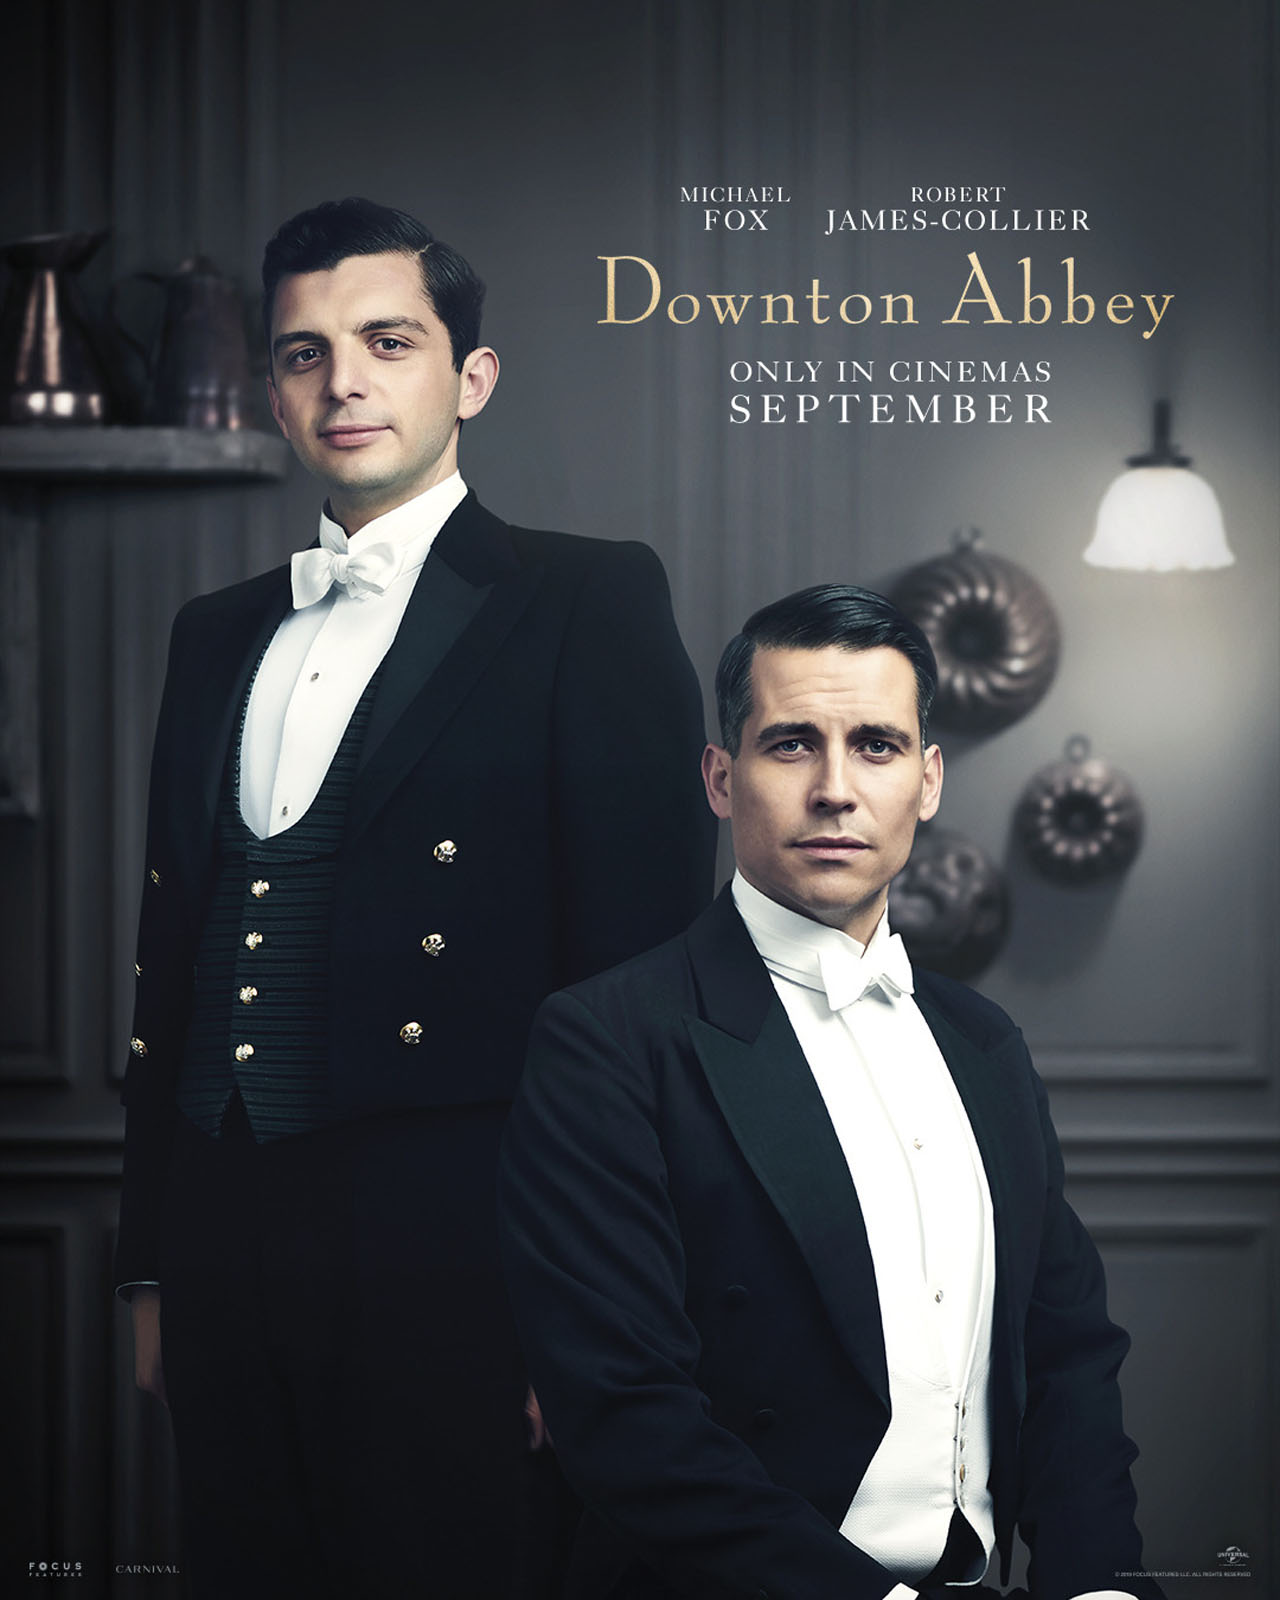 Downton Abbey The Movie Character Posters Andrew Parker and Thomas Barrow